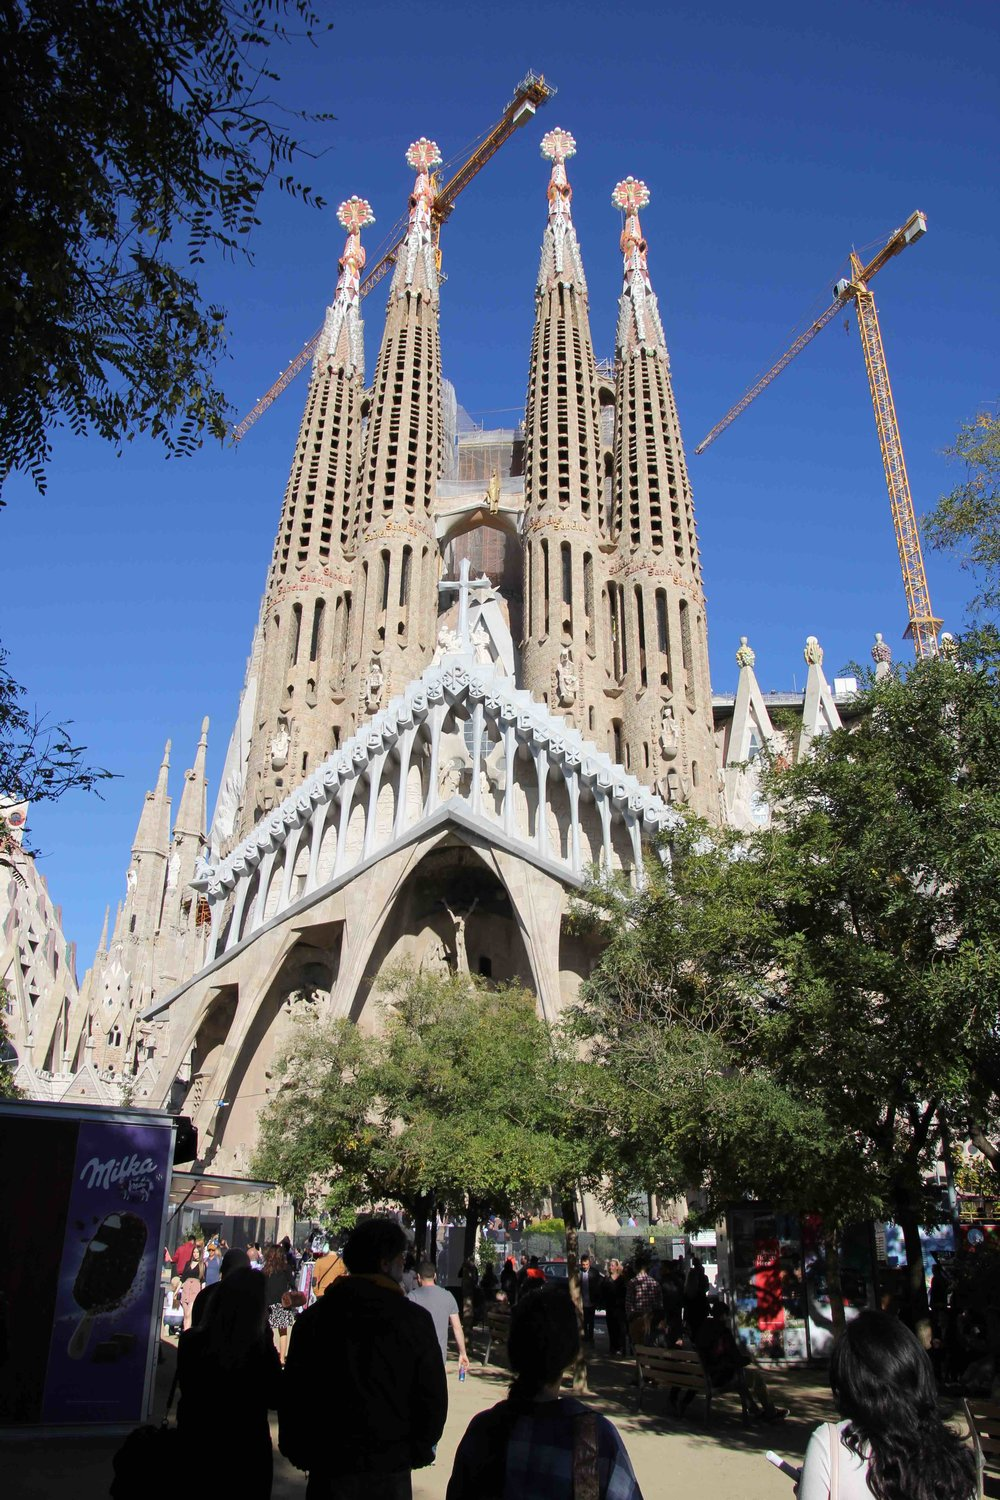 Looking up at the passion side of La Sagrada Familia from the lovely park next to it